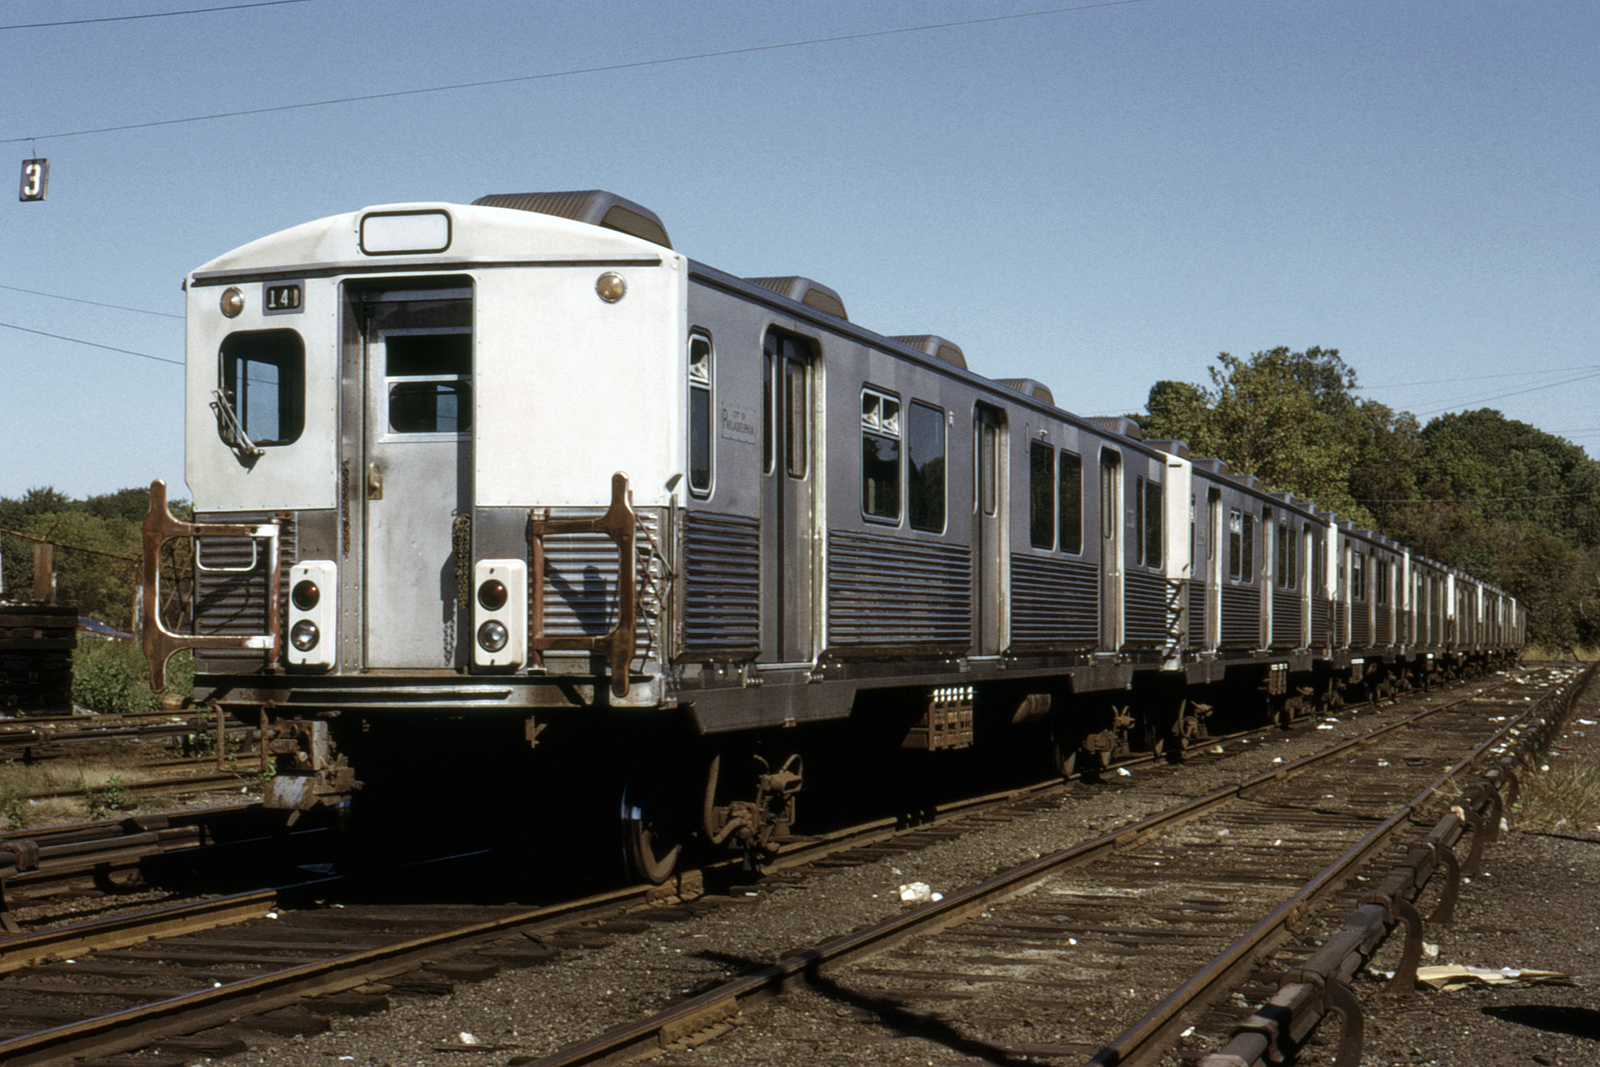 (781k, 1600x1067)<br><b>Country:</b> United States<br><b>City:</b> Philadelphia, PA<br><b>System:</b> SEPTA (or Predecessor)<br><b>Line:</b> Market-Frankford El<br><b>Location:</b> 69th Street Yard/Shops<br><b>Car:</b> SEPTA M-3 (Budd, 1960)  <br><b>Collection of:</b> David Pirmann<br><b>Viewed (this week/total):</b> 1 / 80